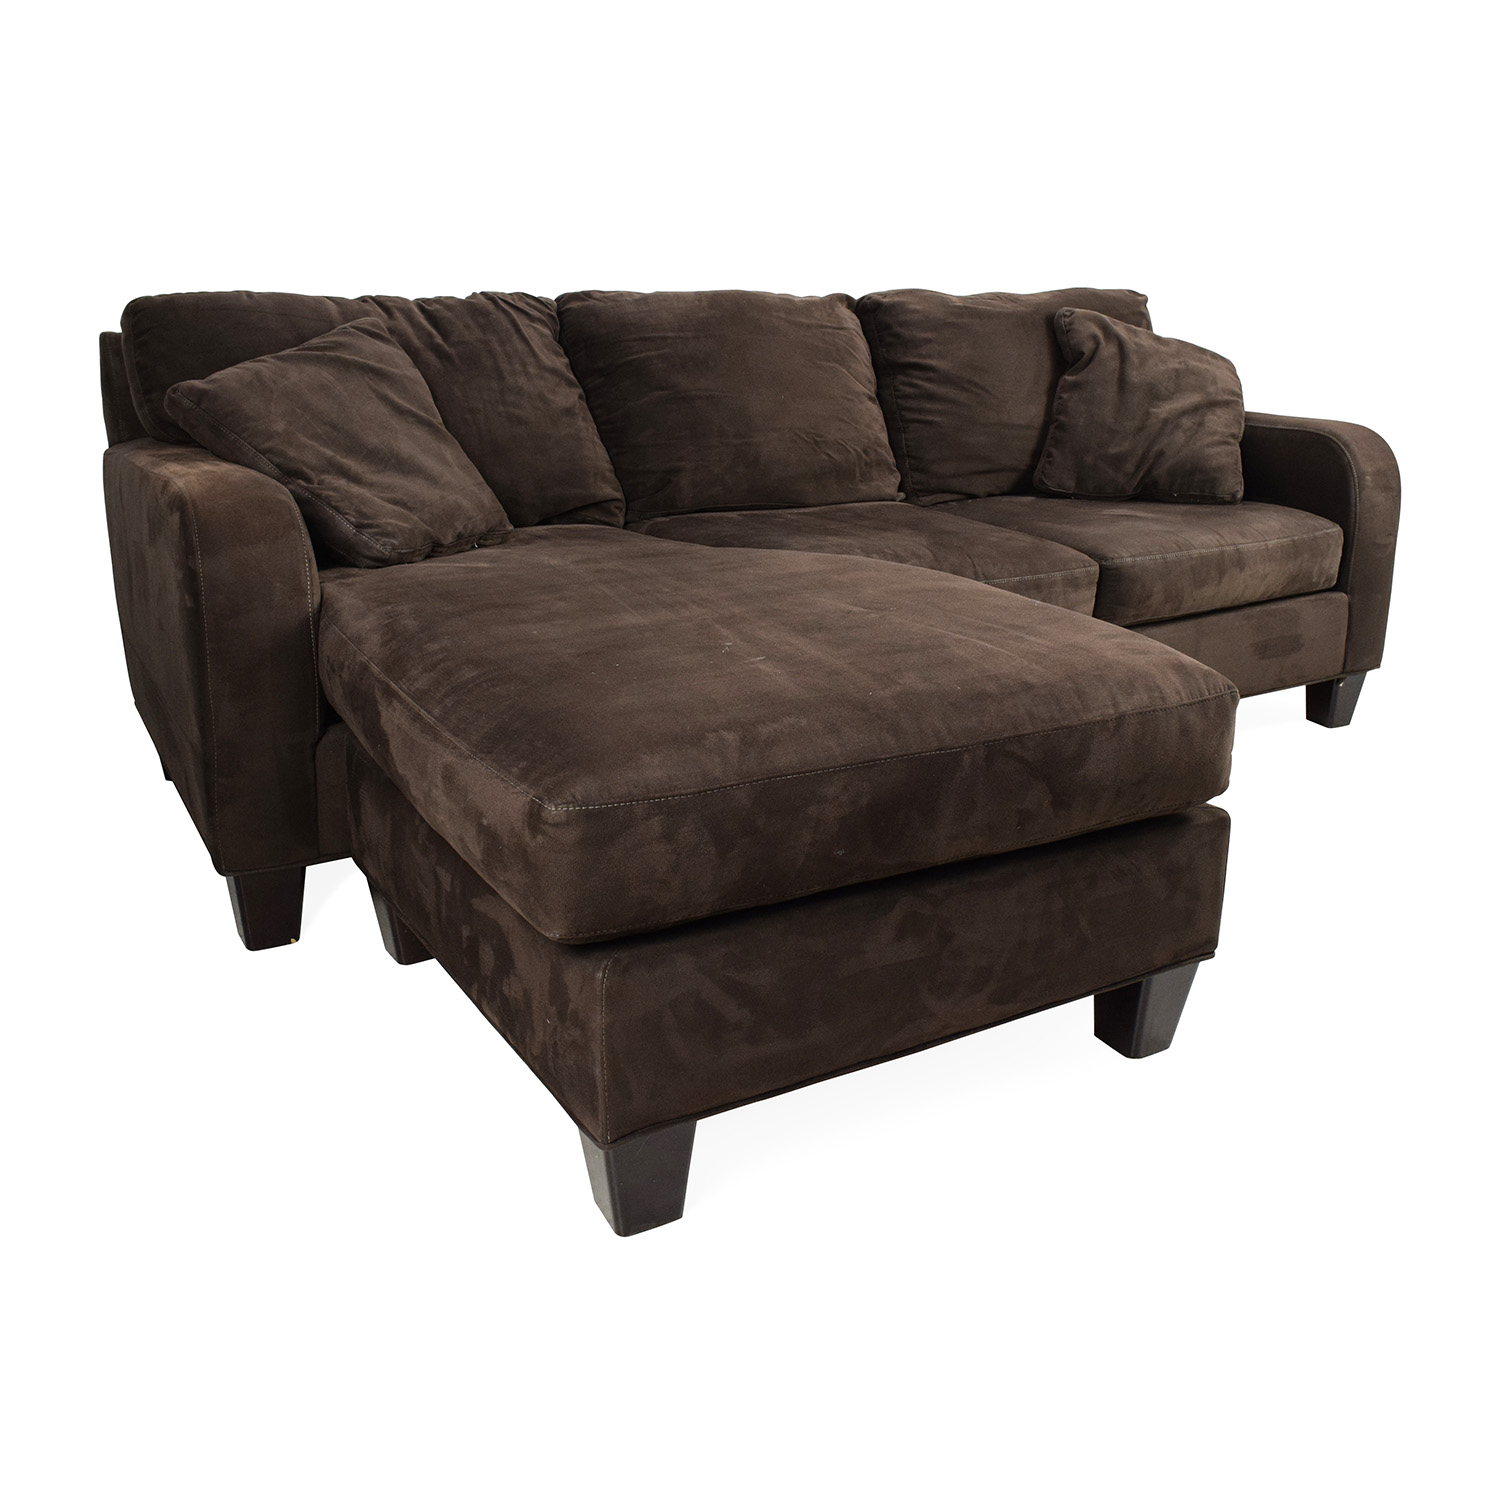 Bailey microfiber chaise sofa for Black microfiber chaise